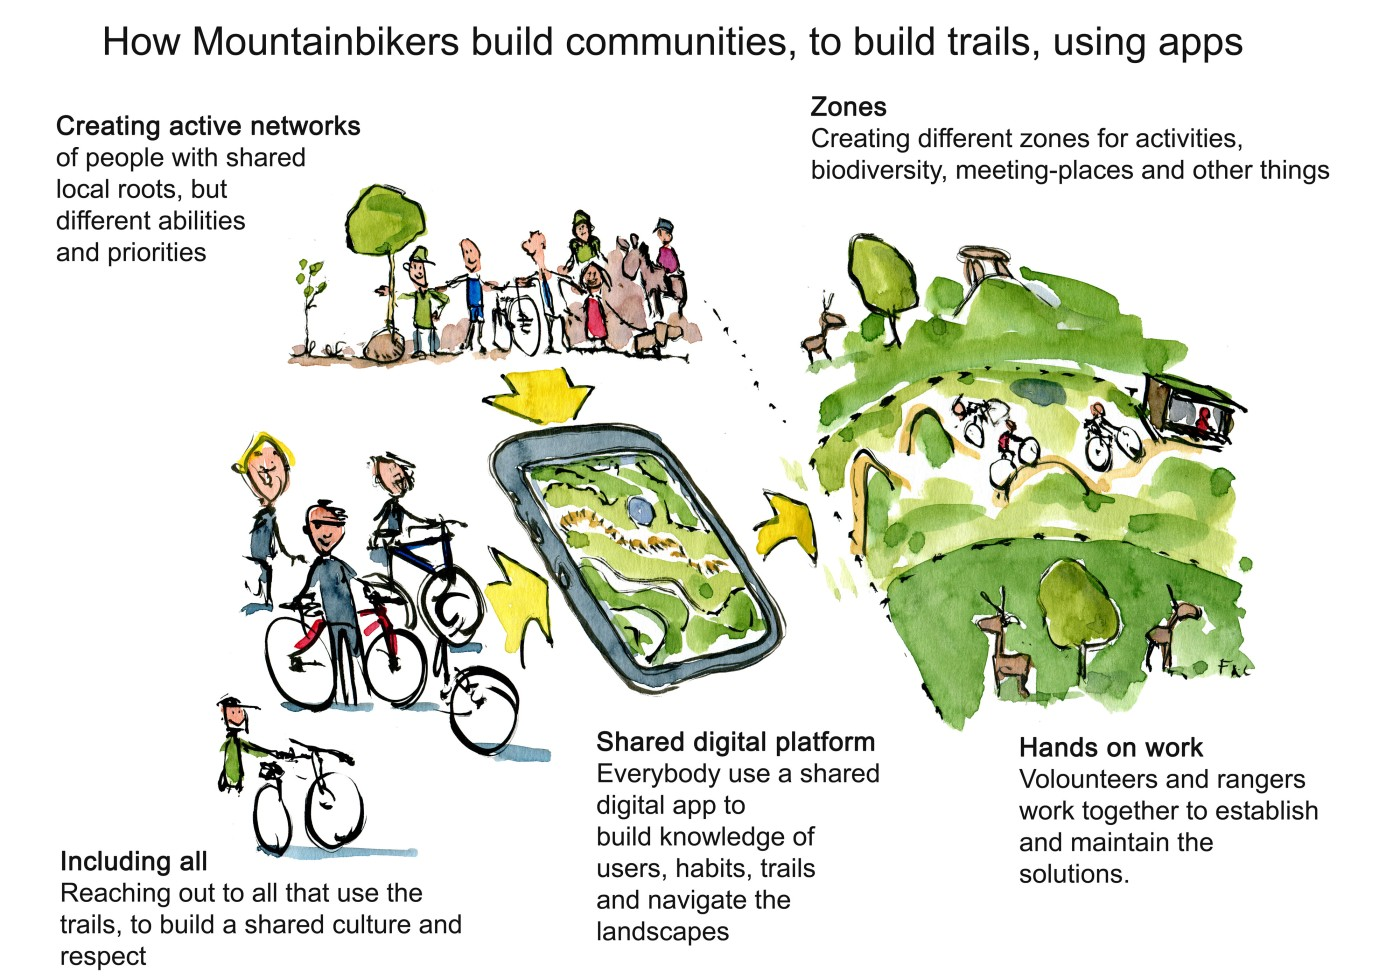 Mountainbike community with map use Illustration by Frits Ahlefeldt